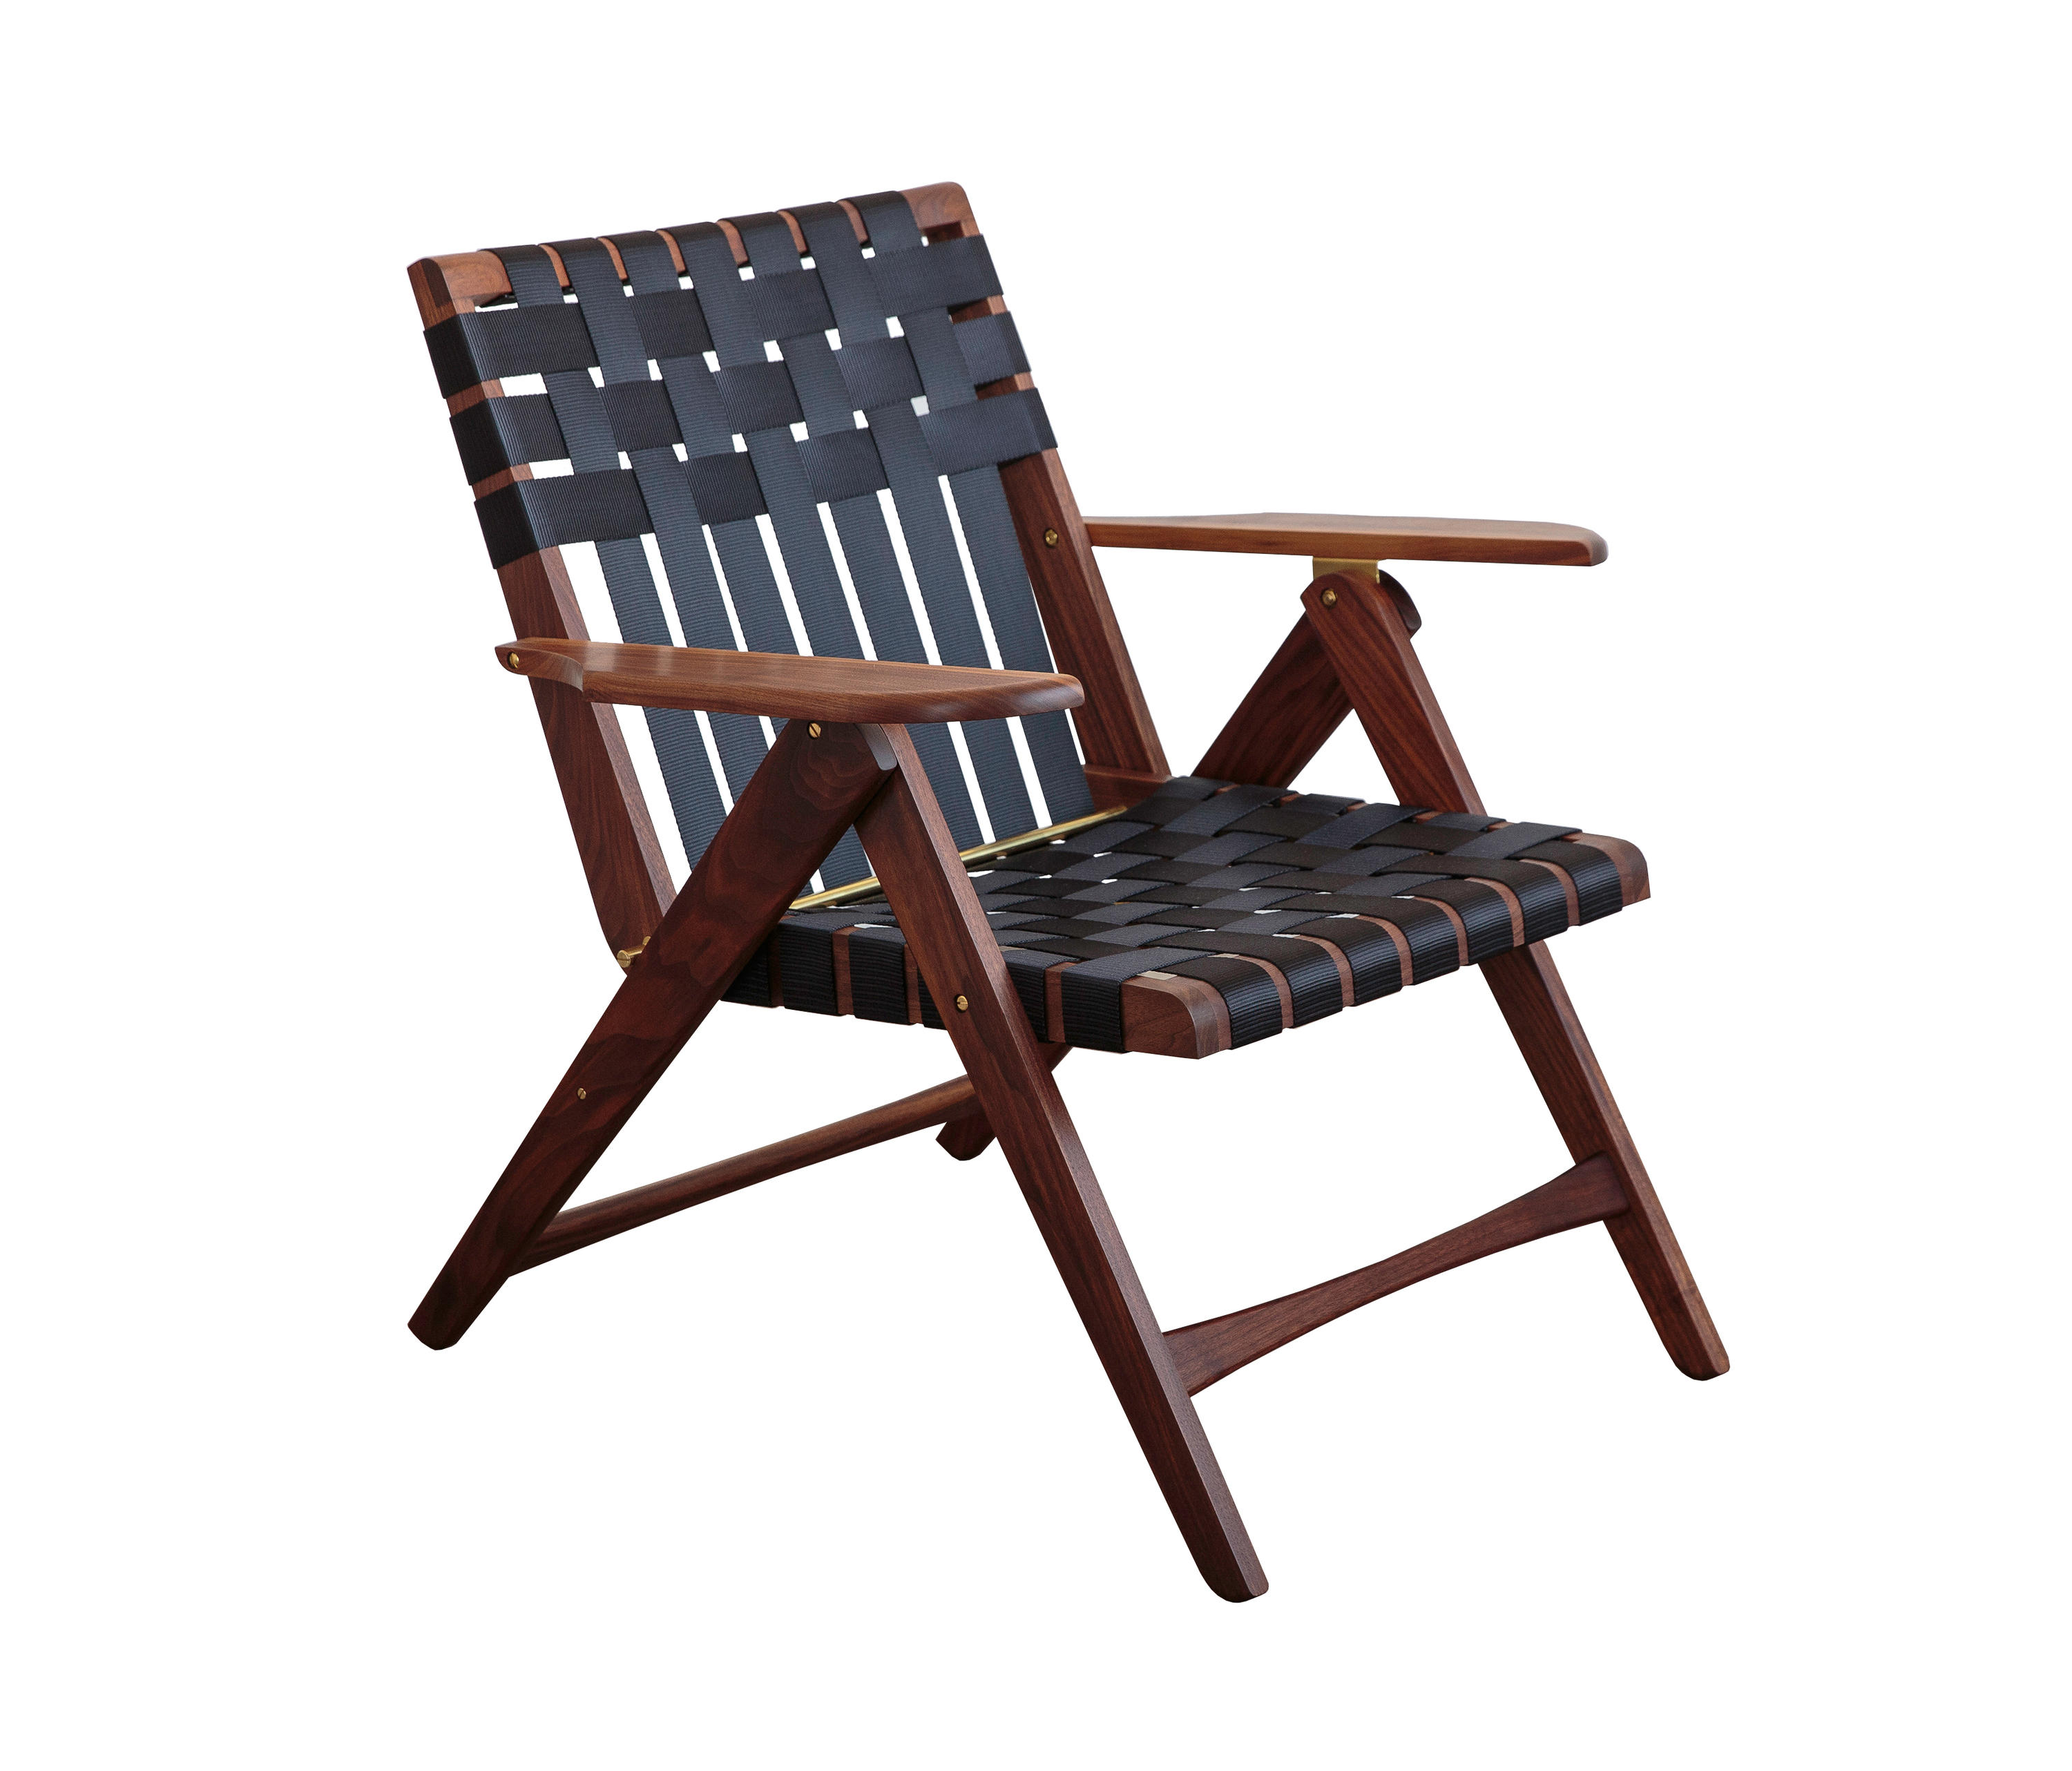 FOLDING LOUNGE CHAIR WALNUT Lounge chairs from Todd St John